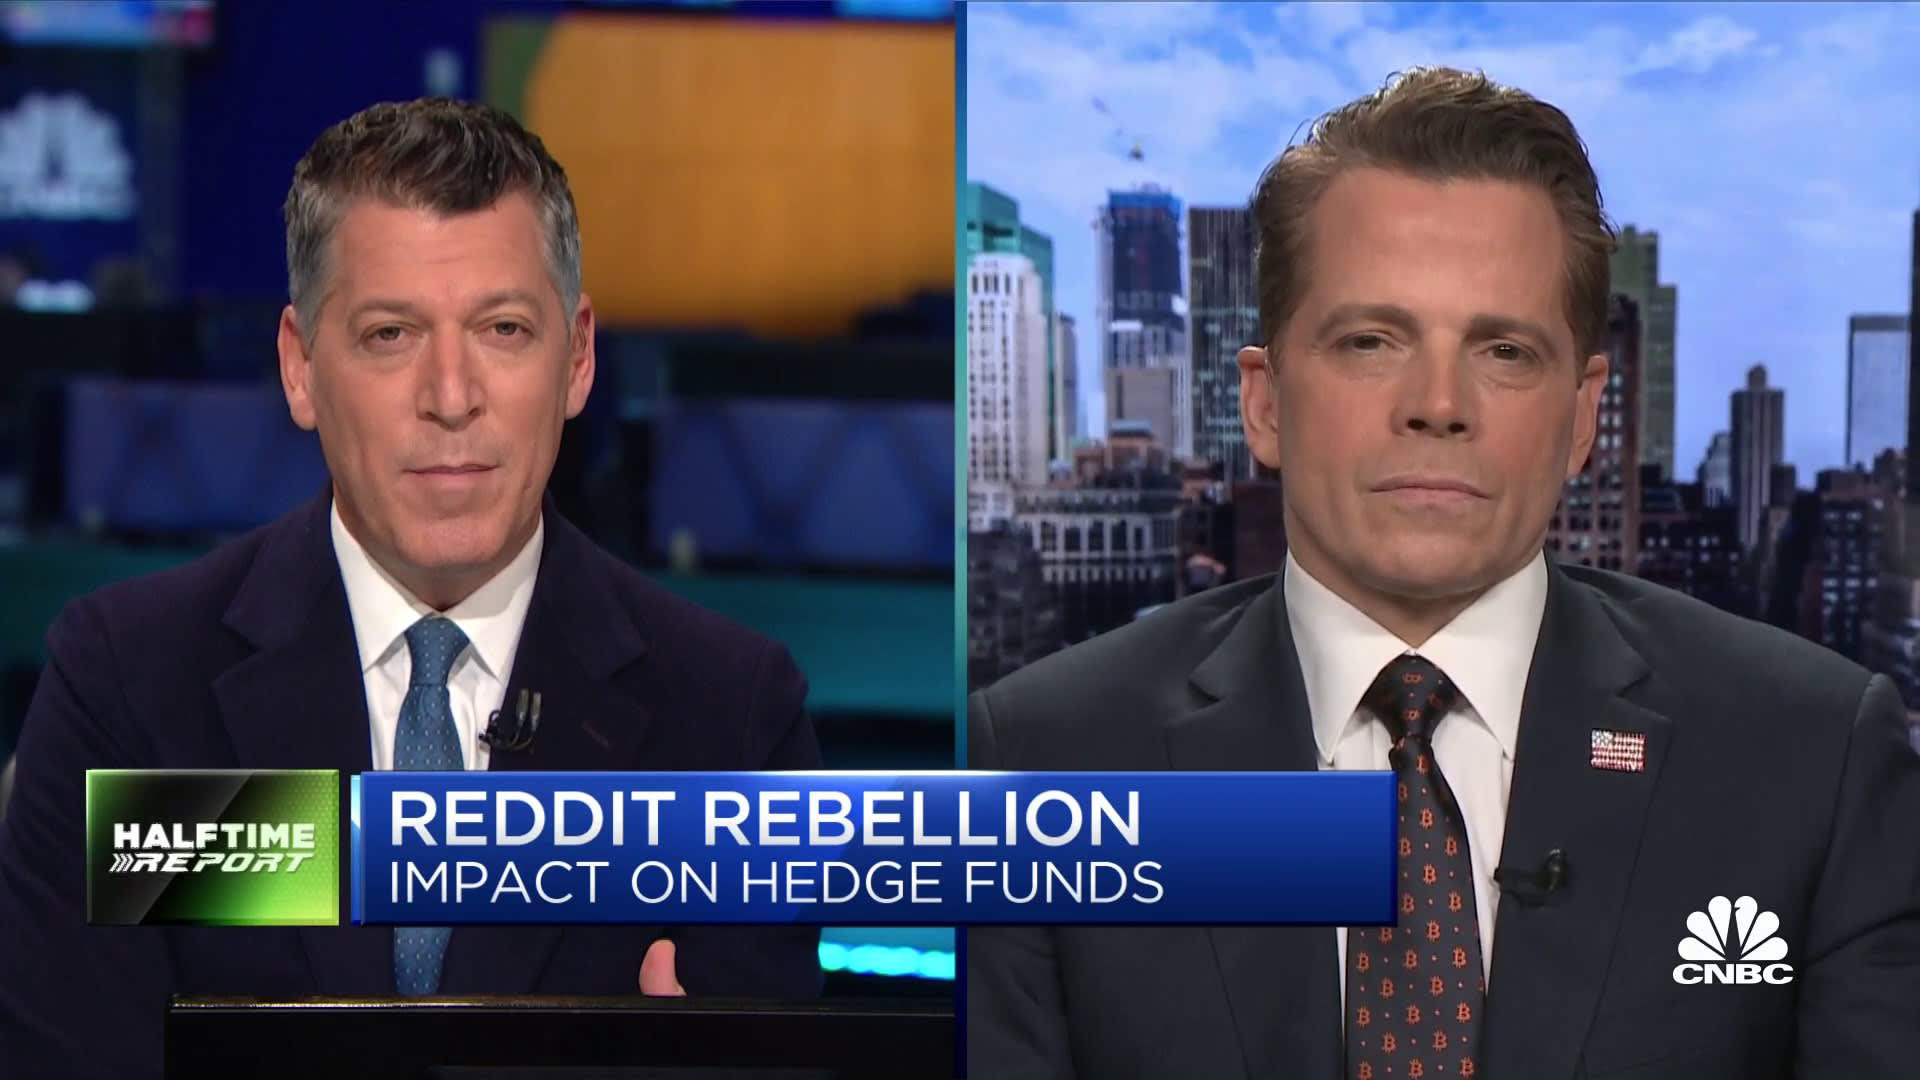 CNBC's full interview with Anthony Scaramucci on GME, bitcoin